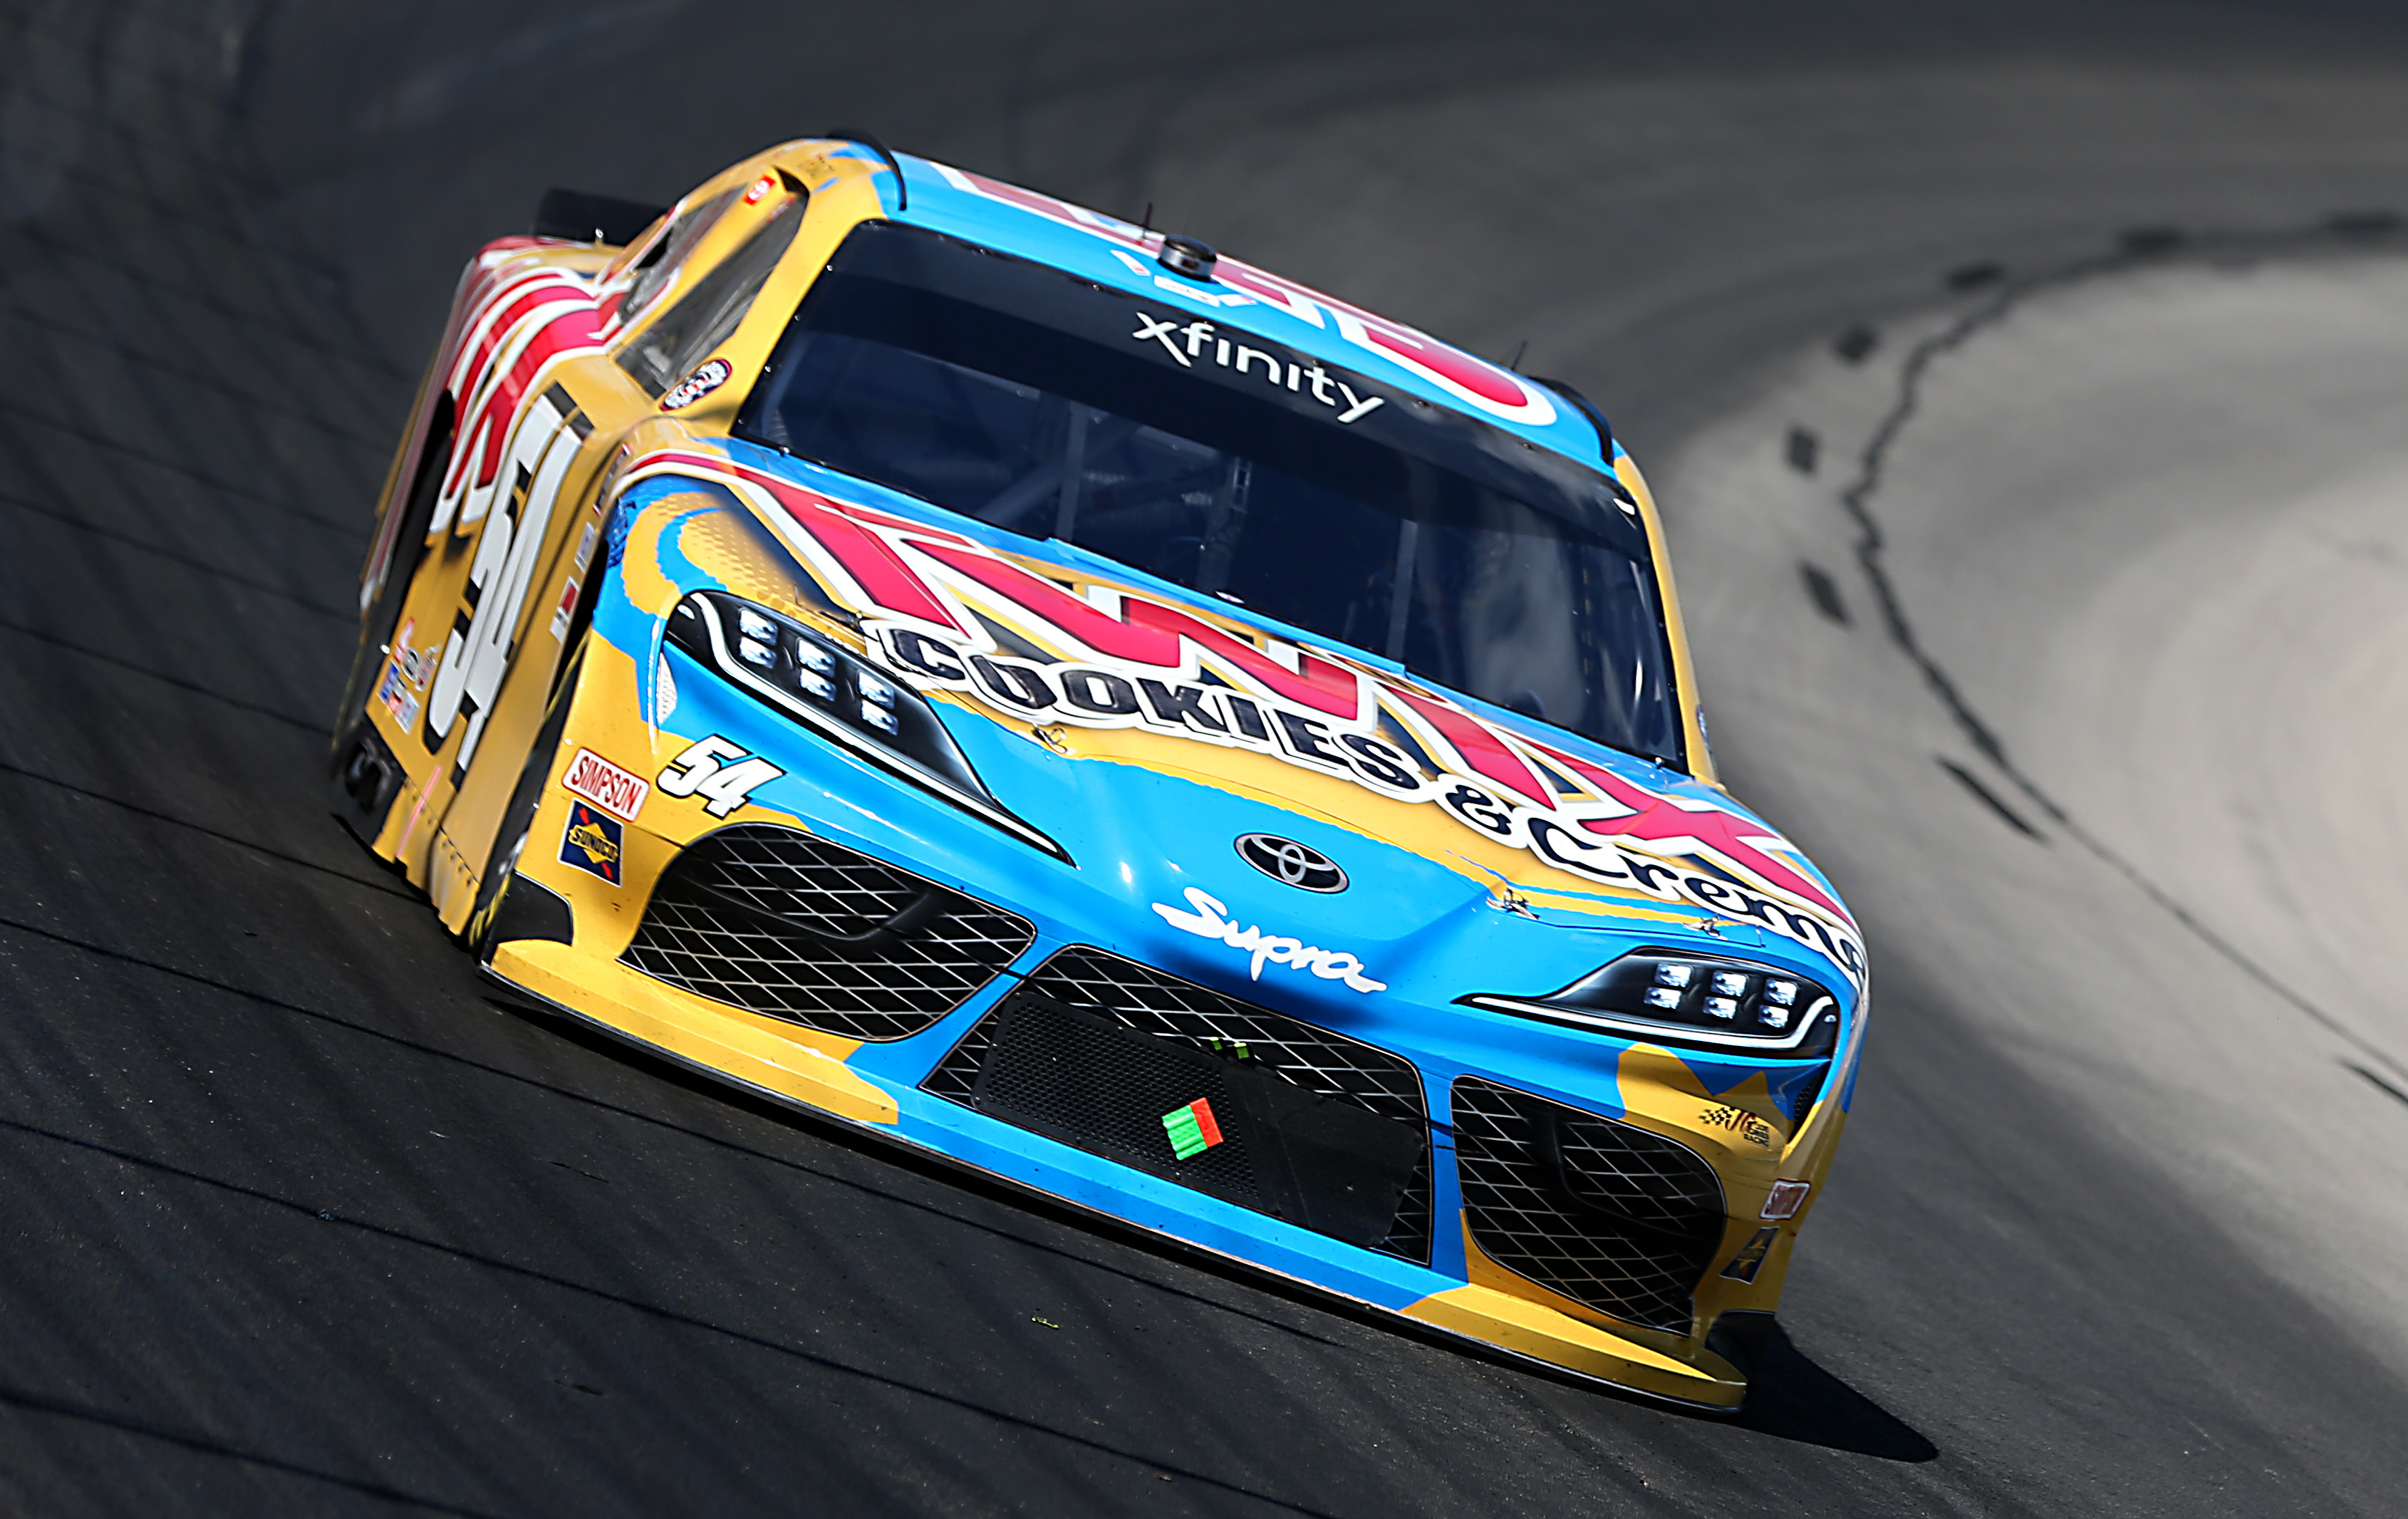 Kyle Busch, driver of the #54 Twix Cookies & Crème Toyota, drives during the NASCAR Xfinity Series Bariatric Solutions 300 at Texas Motor Speedway on July 18, 2020 in Fort Worth, Texas.